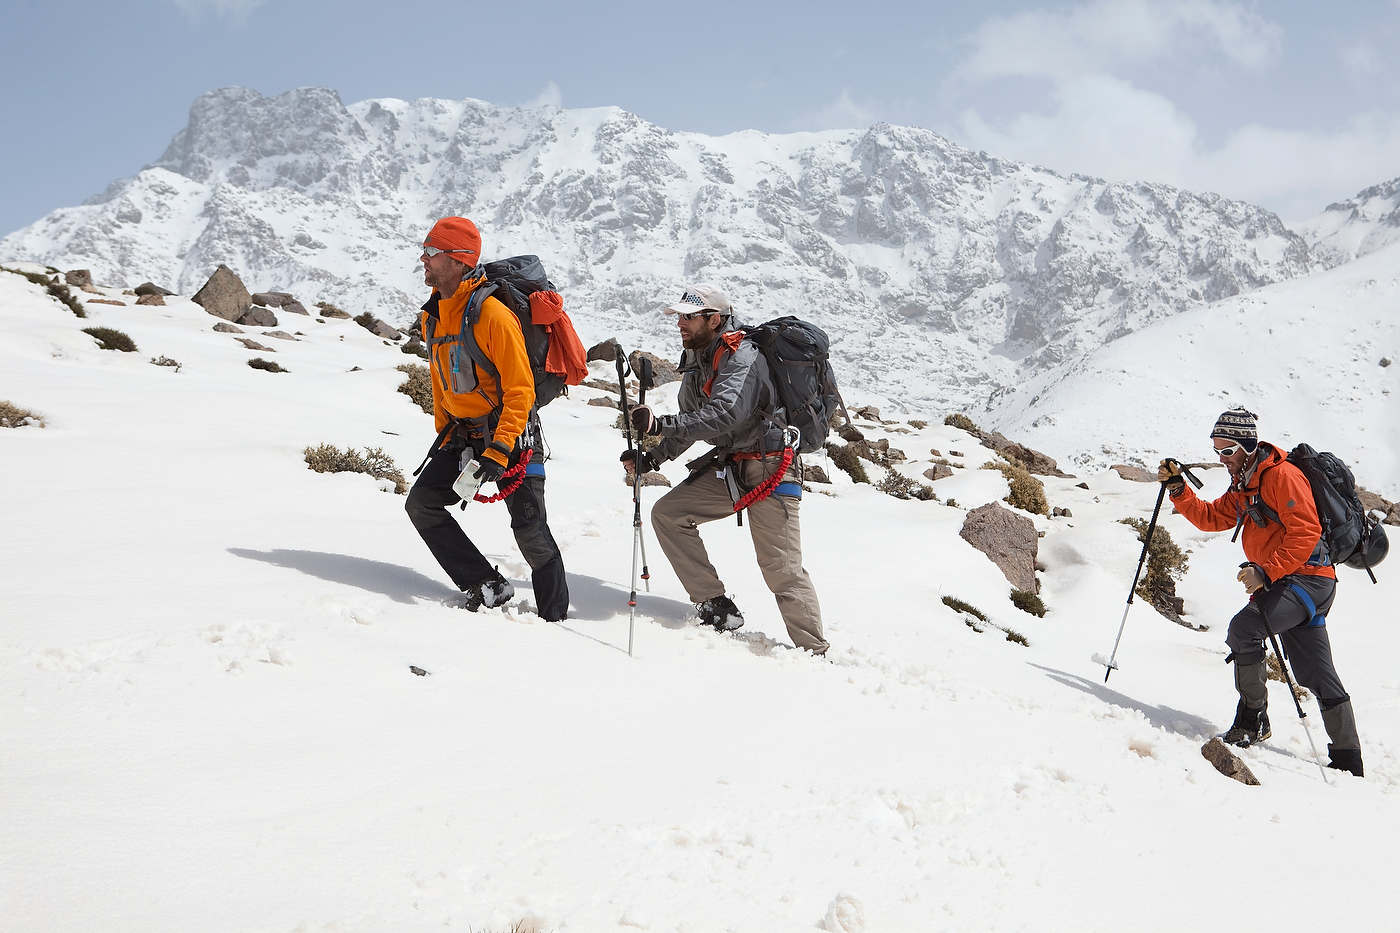 Expedition Impossible, Morocco, for ABC Television.